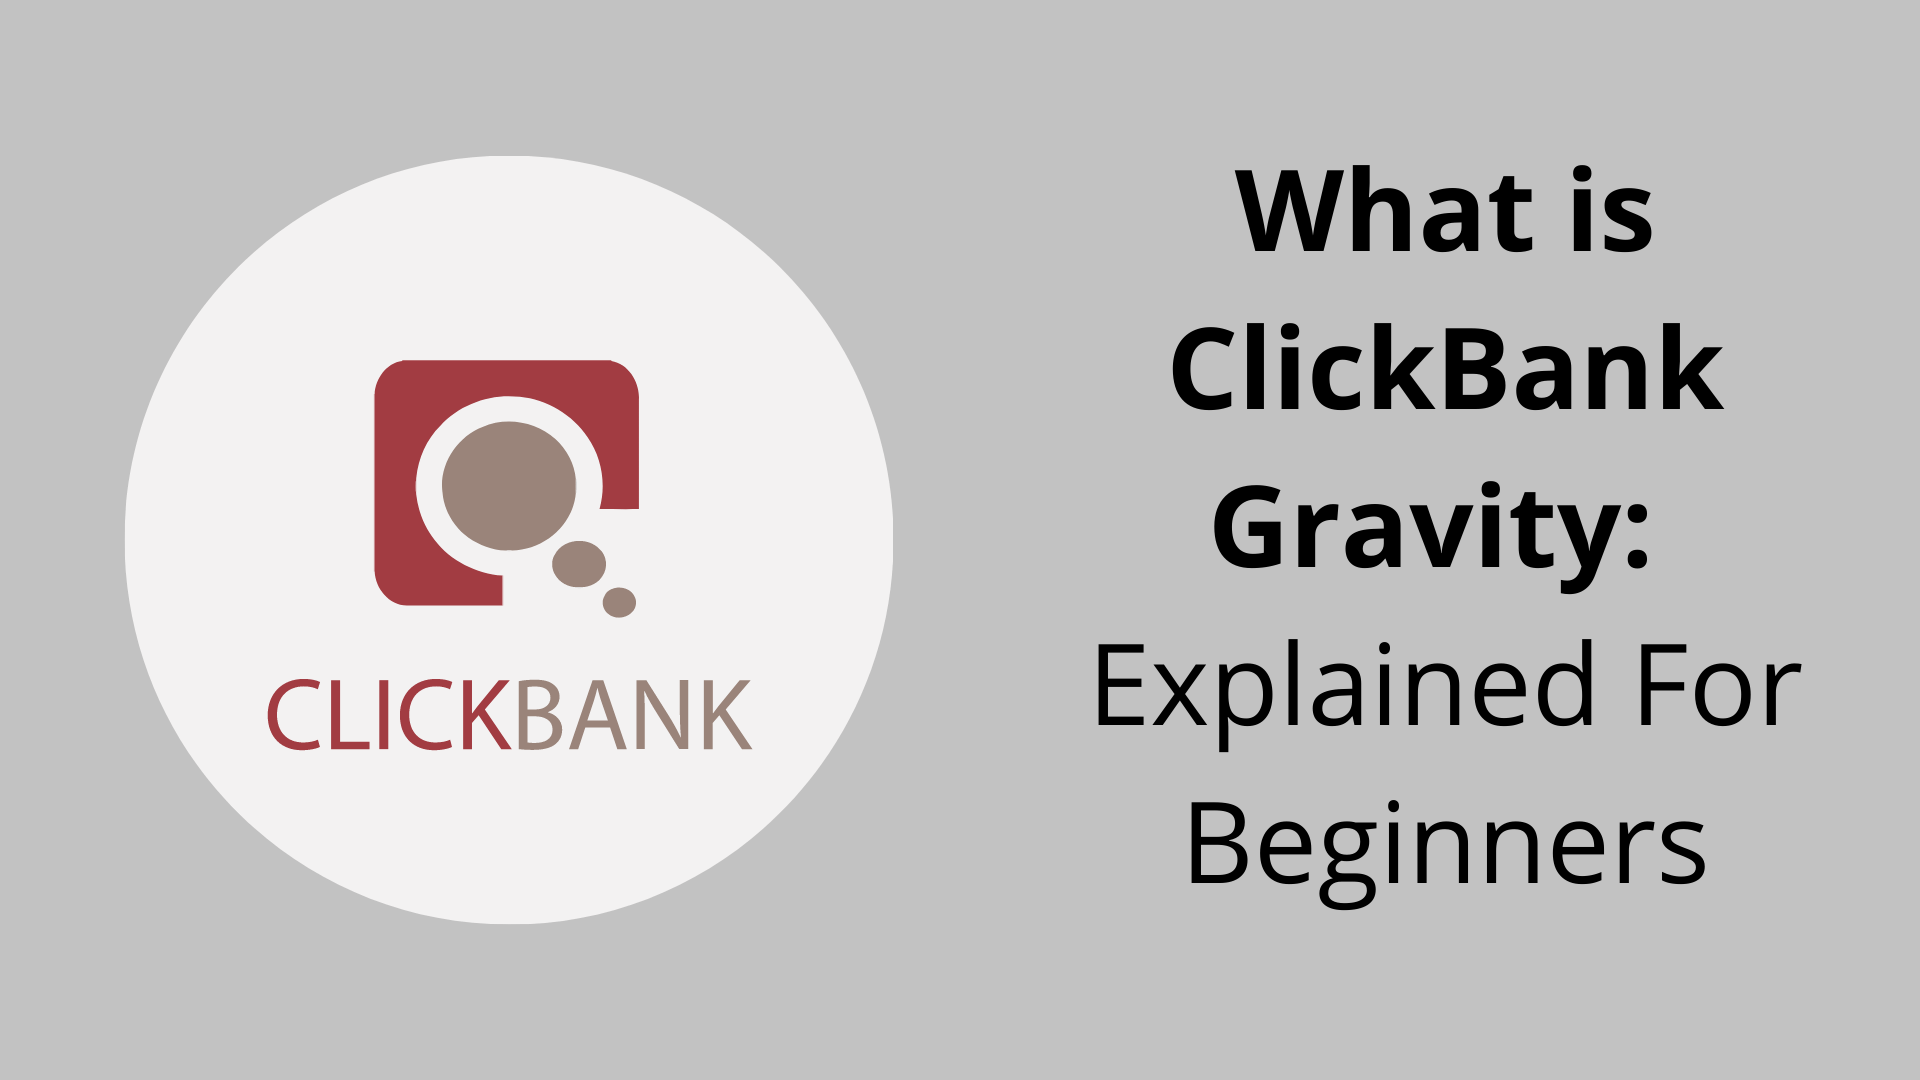 What does gravity mean on ClickBank